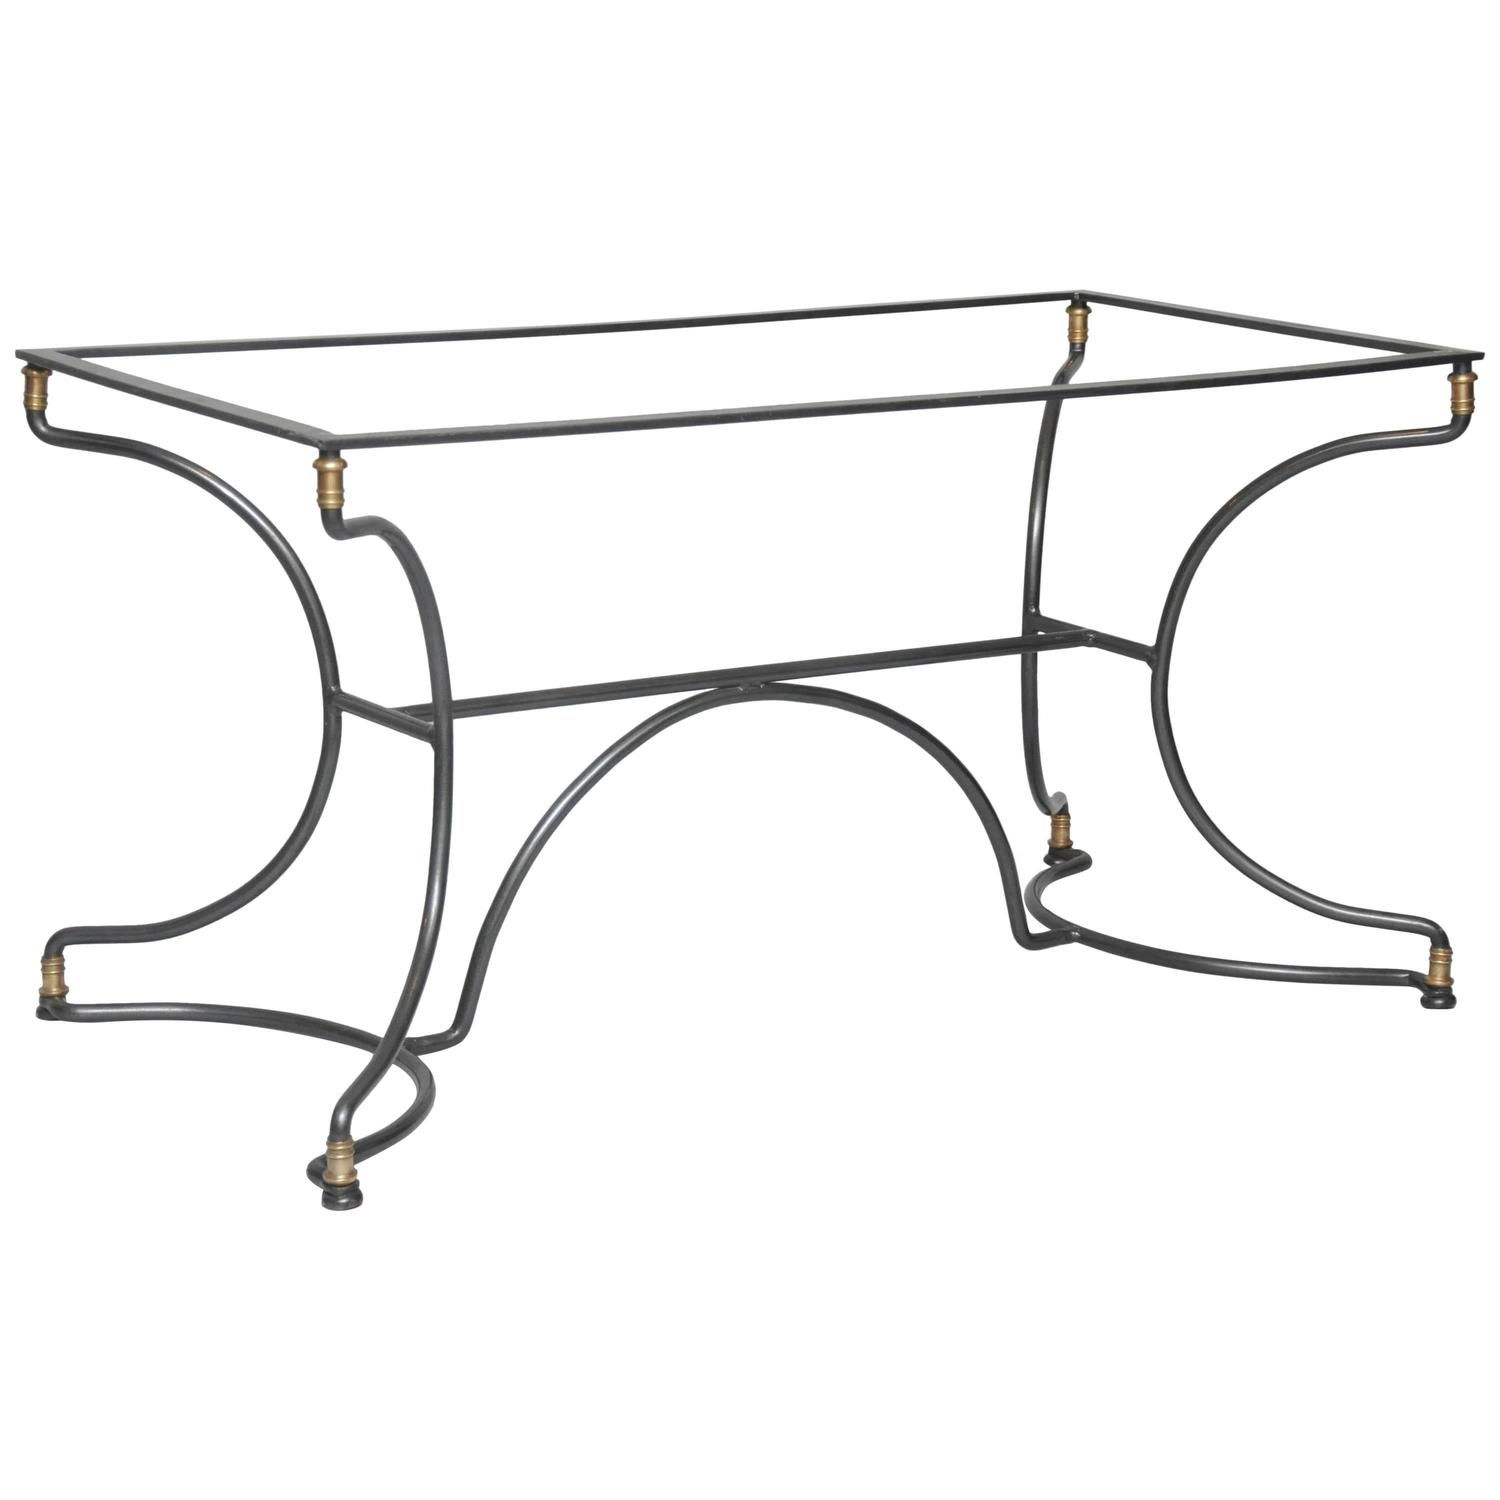 French Art Deco Iron Cafe Table, Rectangular Form, Can Use Custom Sized  Glass Or Marble Top. Clean Geometric Shaped Base With Brass Ornaments At  Crown And ...